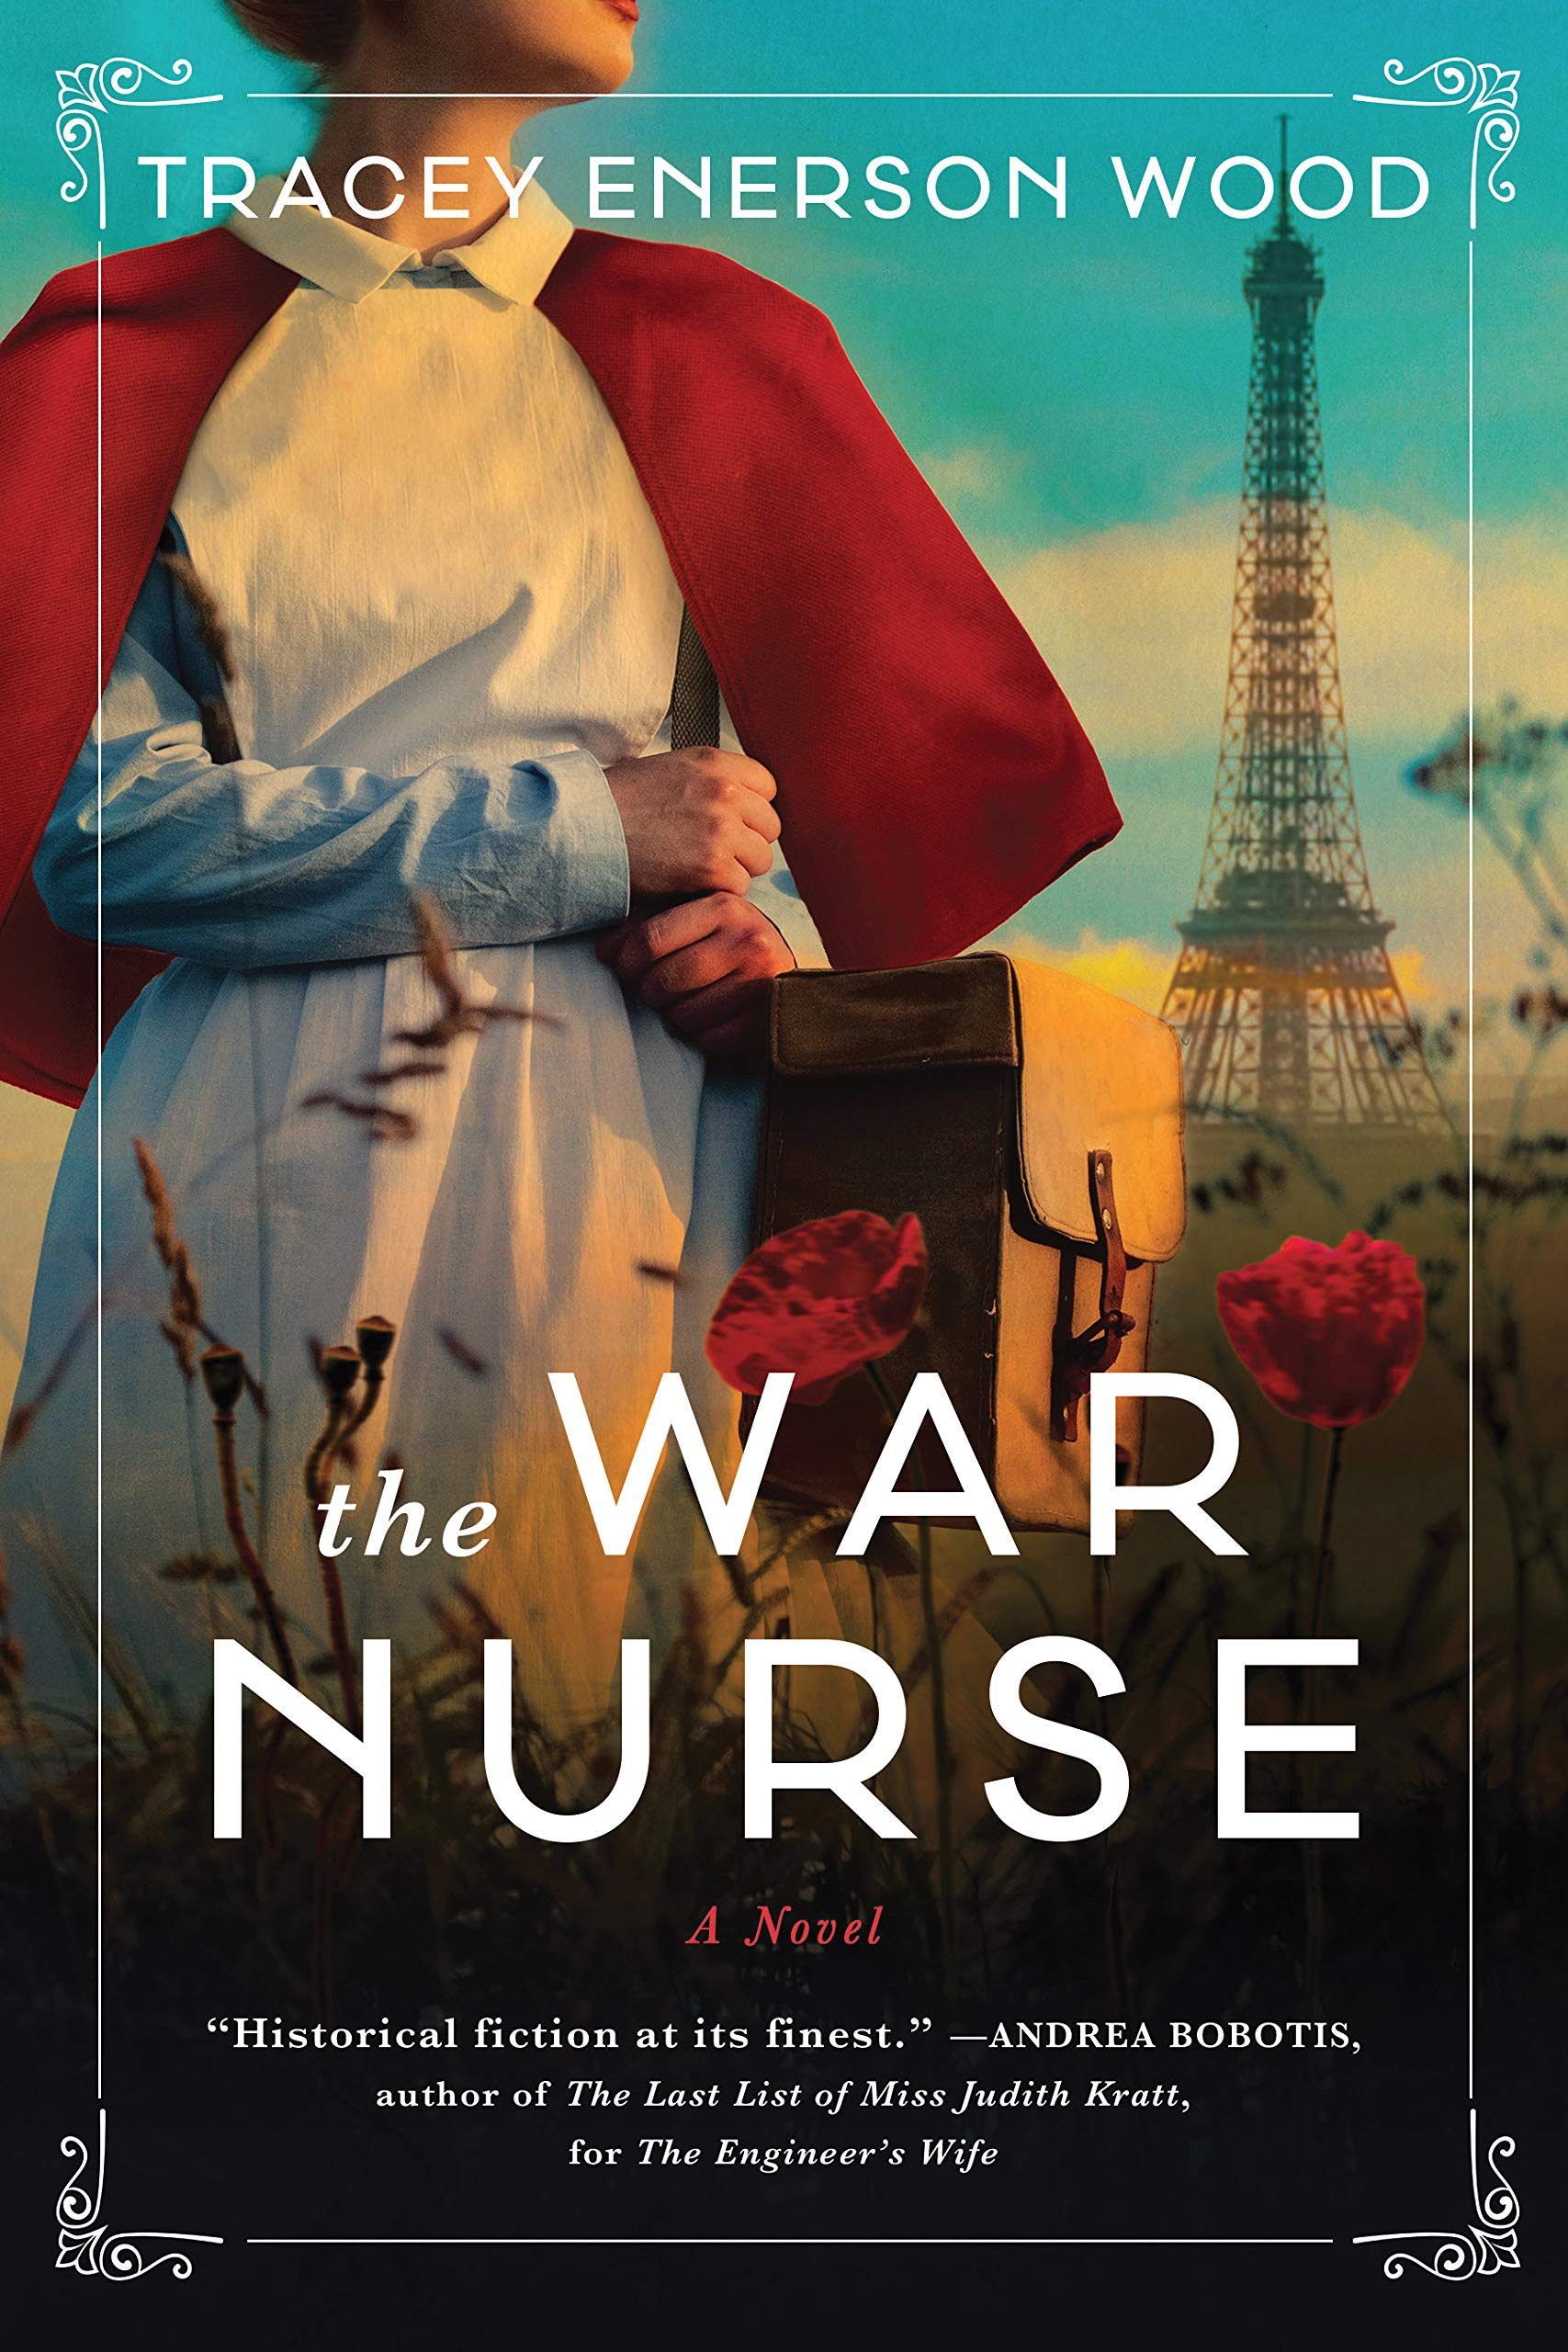 The War Nurse by Tracey Enerson Wood